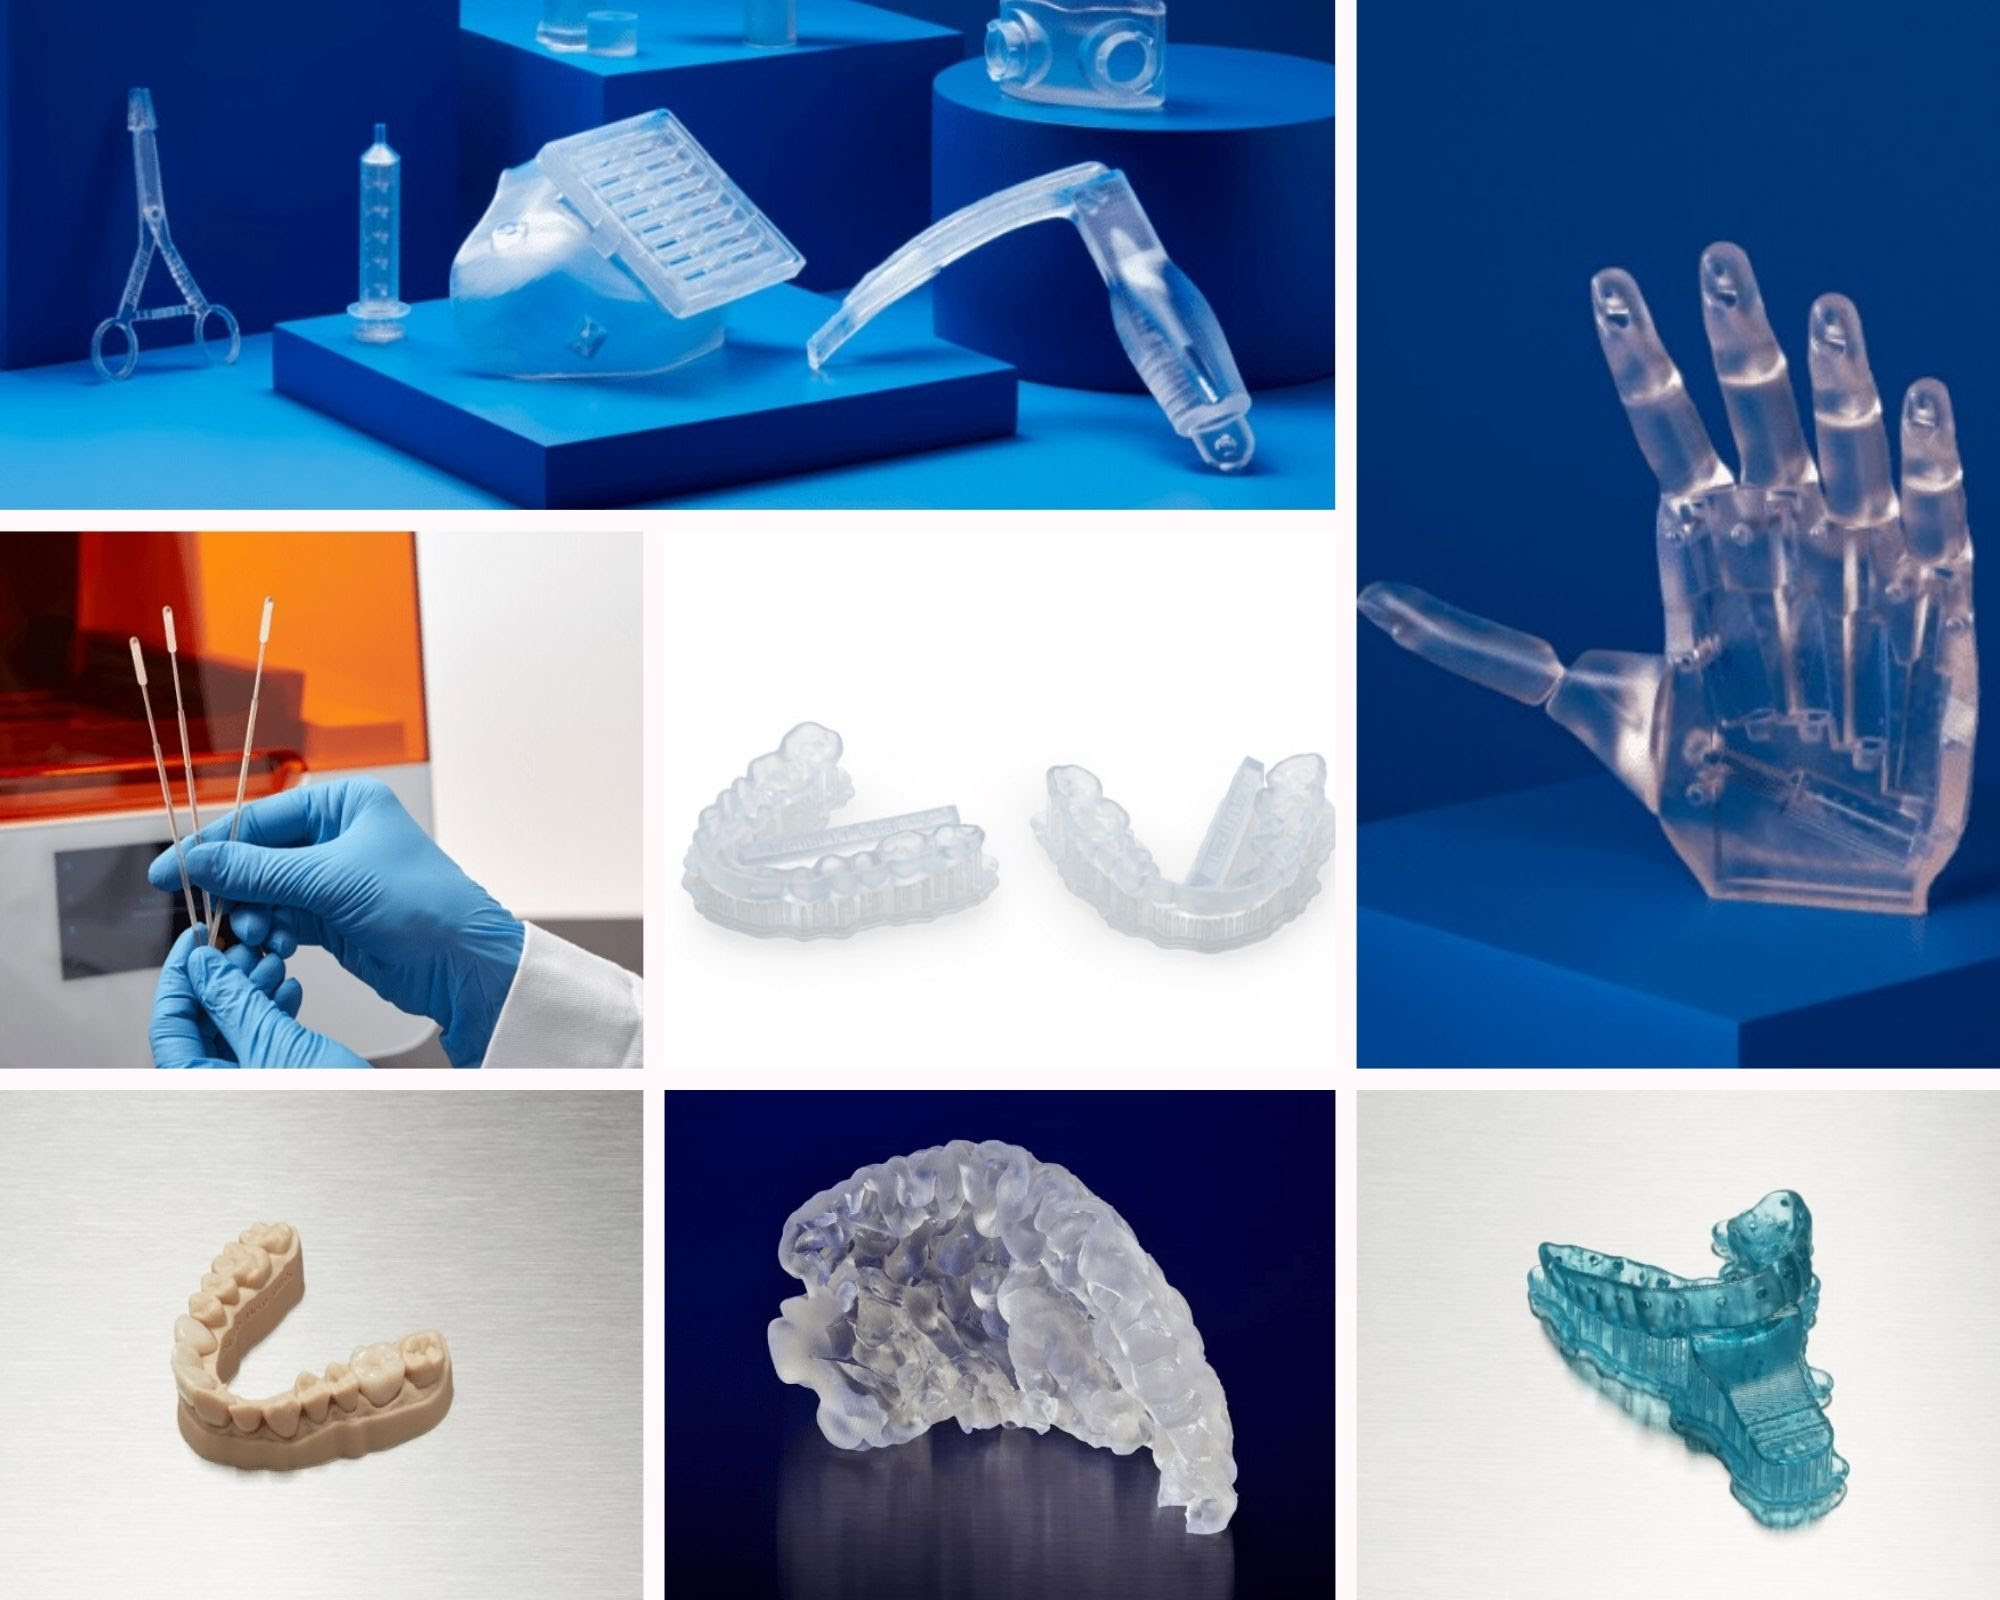 https://www.3dsystems.com/applications/medical-device-manufacturing